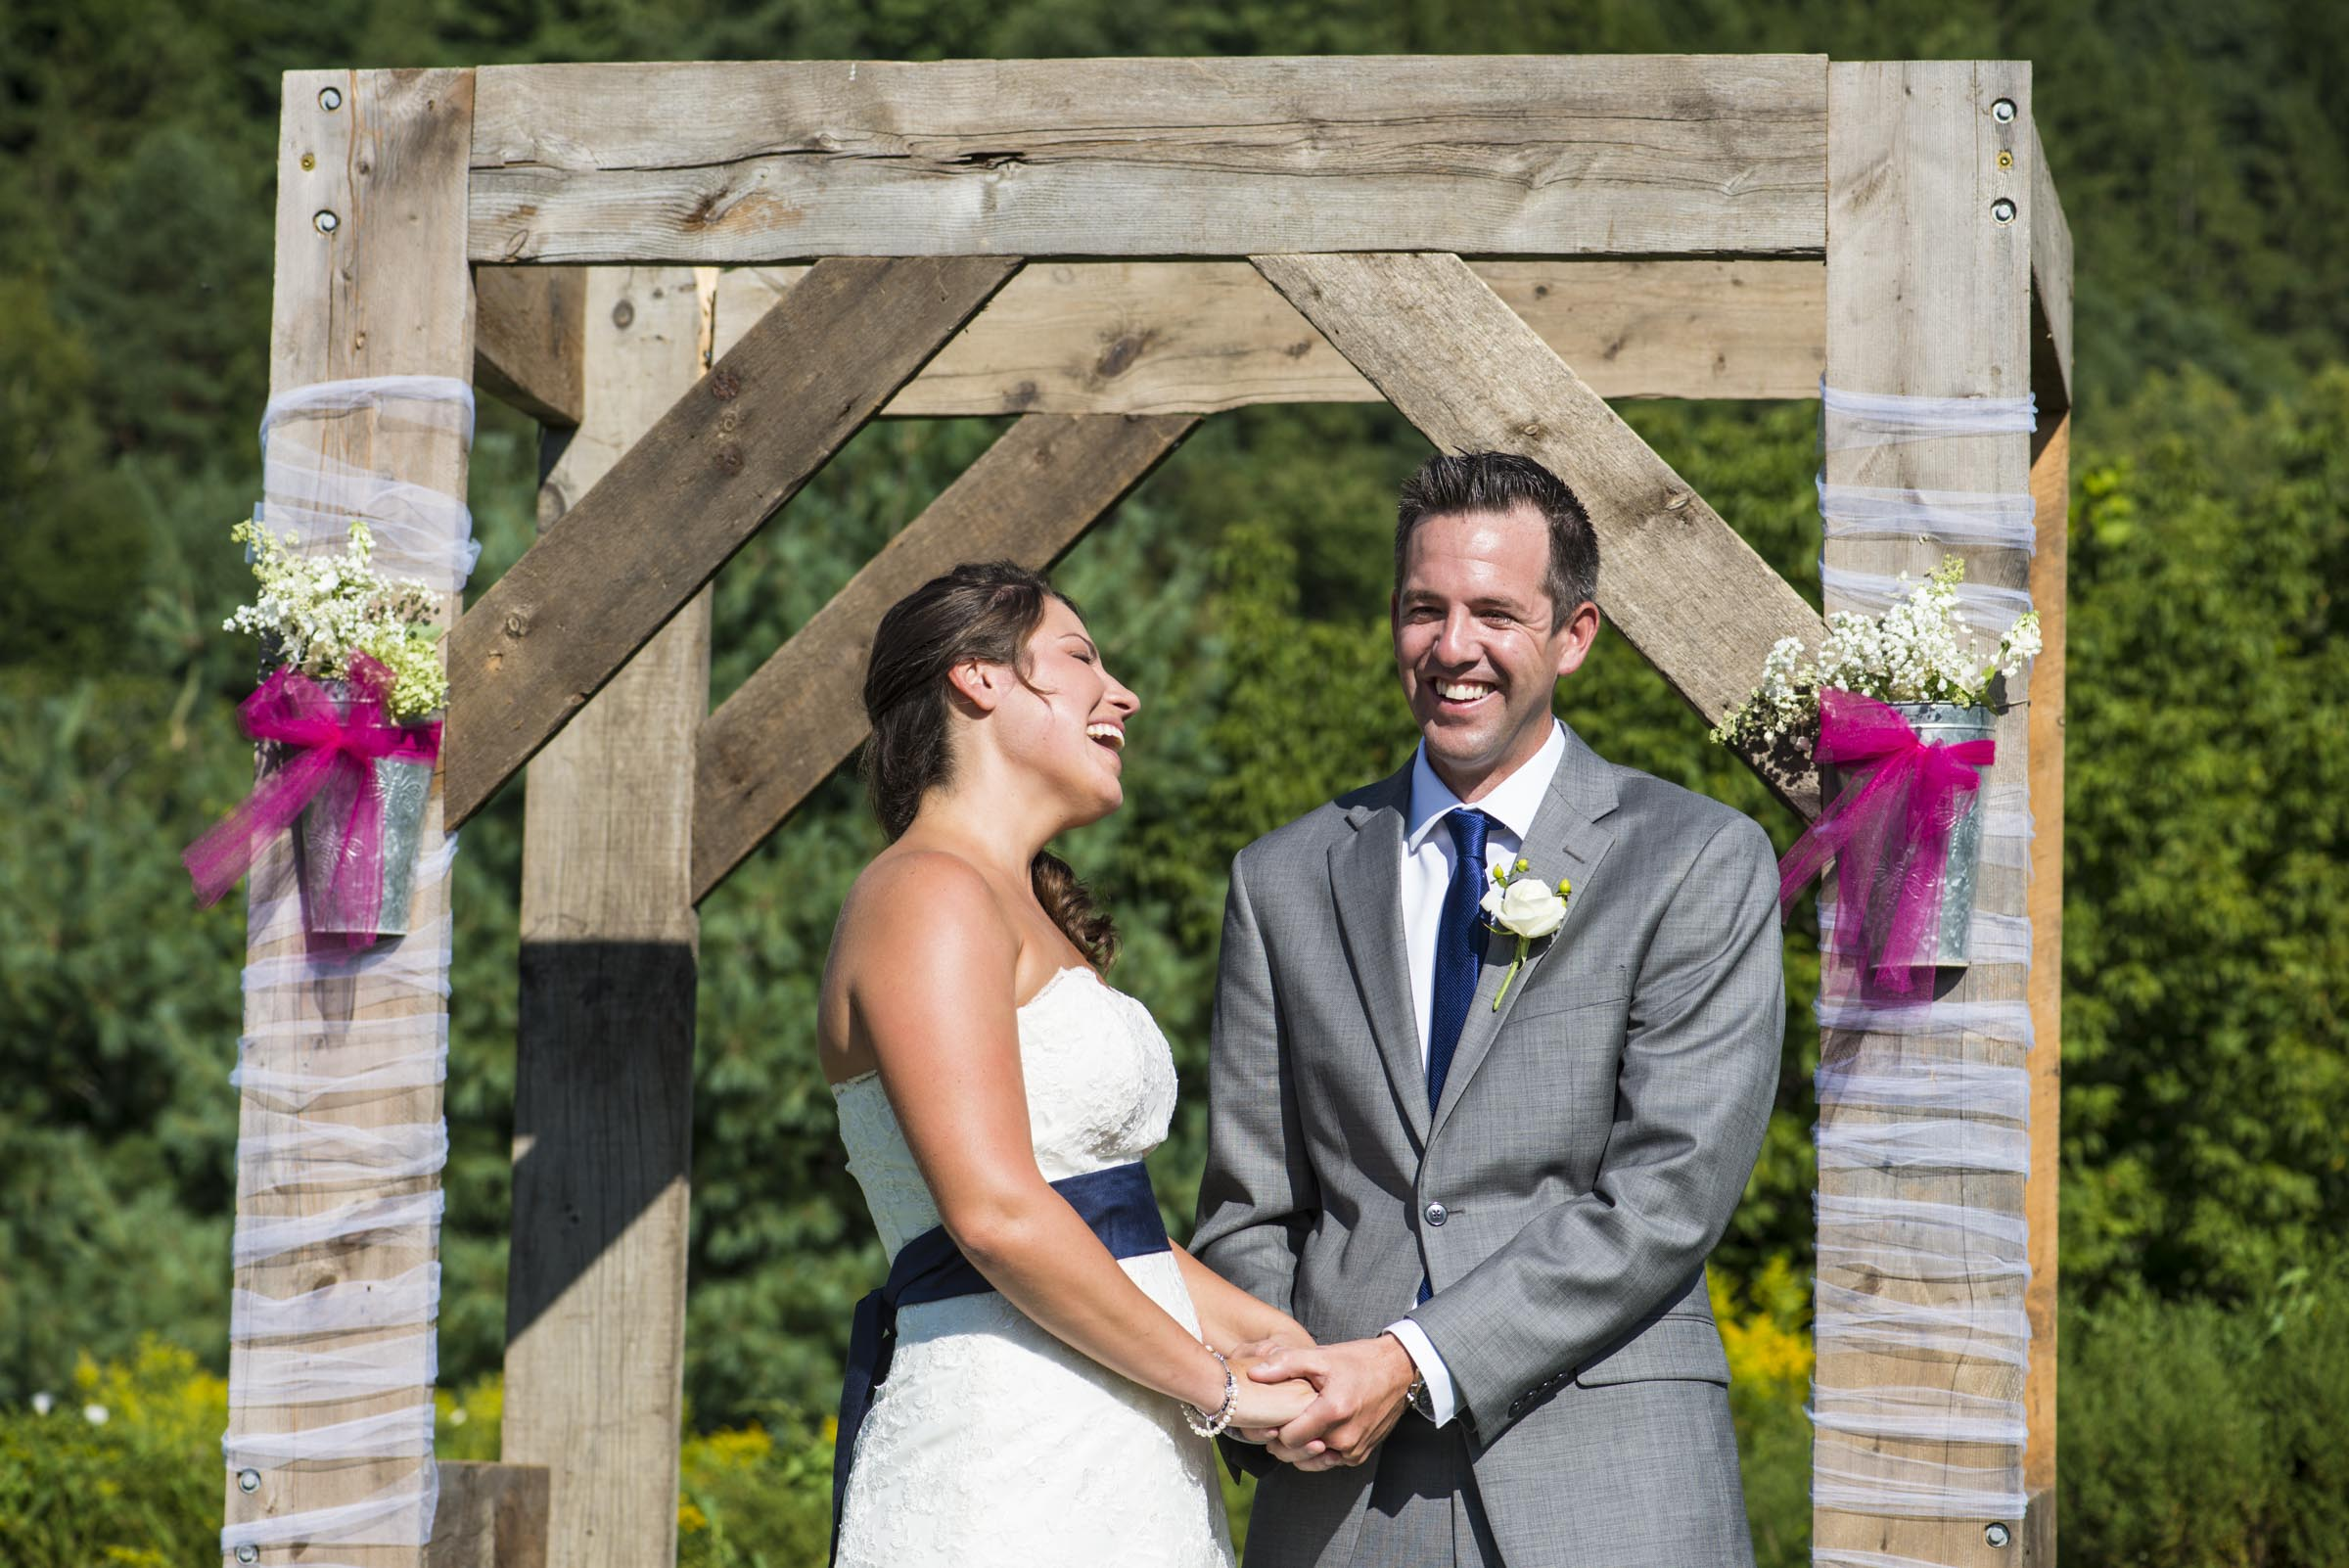 08232014-Chris&VanessaWedding-JuliaLuckettPhotography-169